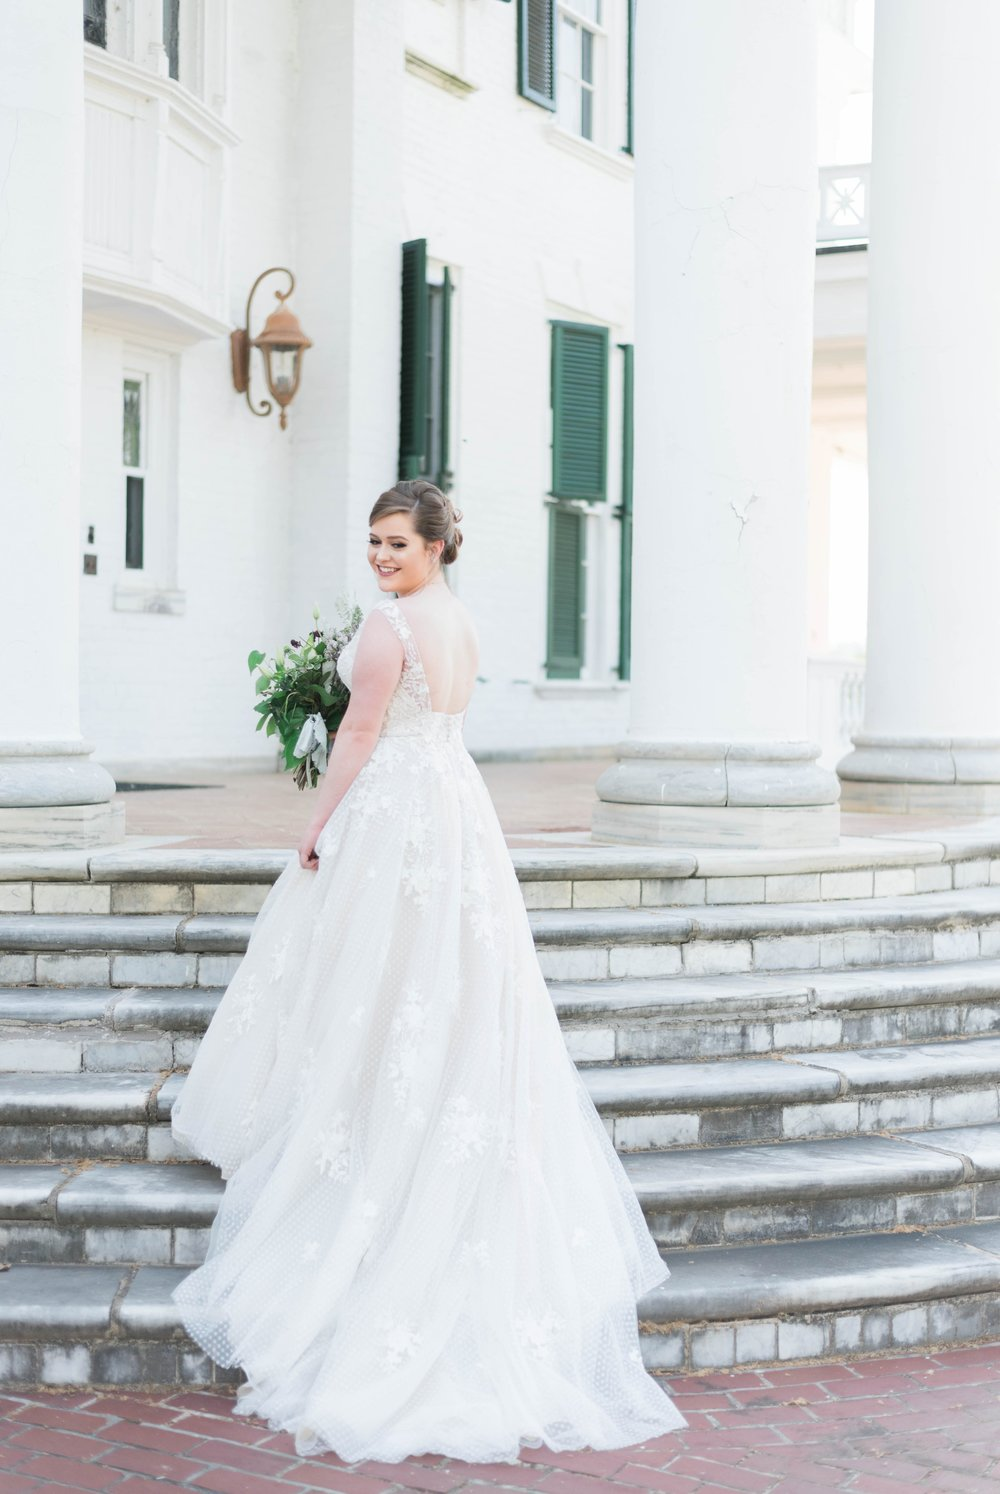 Jillian+Abi_OakridgeEstate_Wedding_VirginiaWeddingPhotographer_SpringWedding 36.jpg